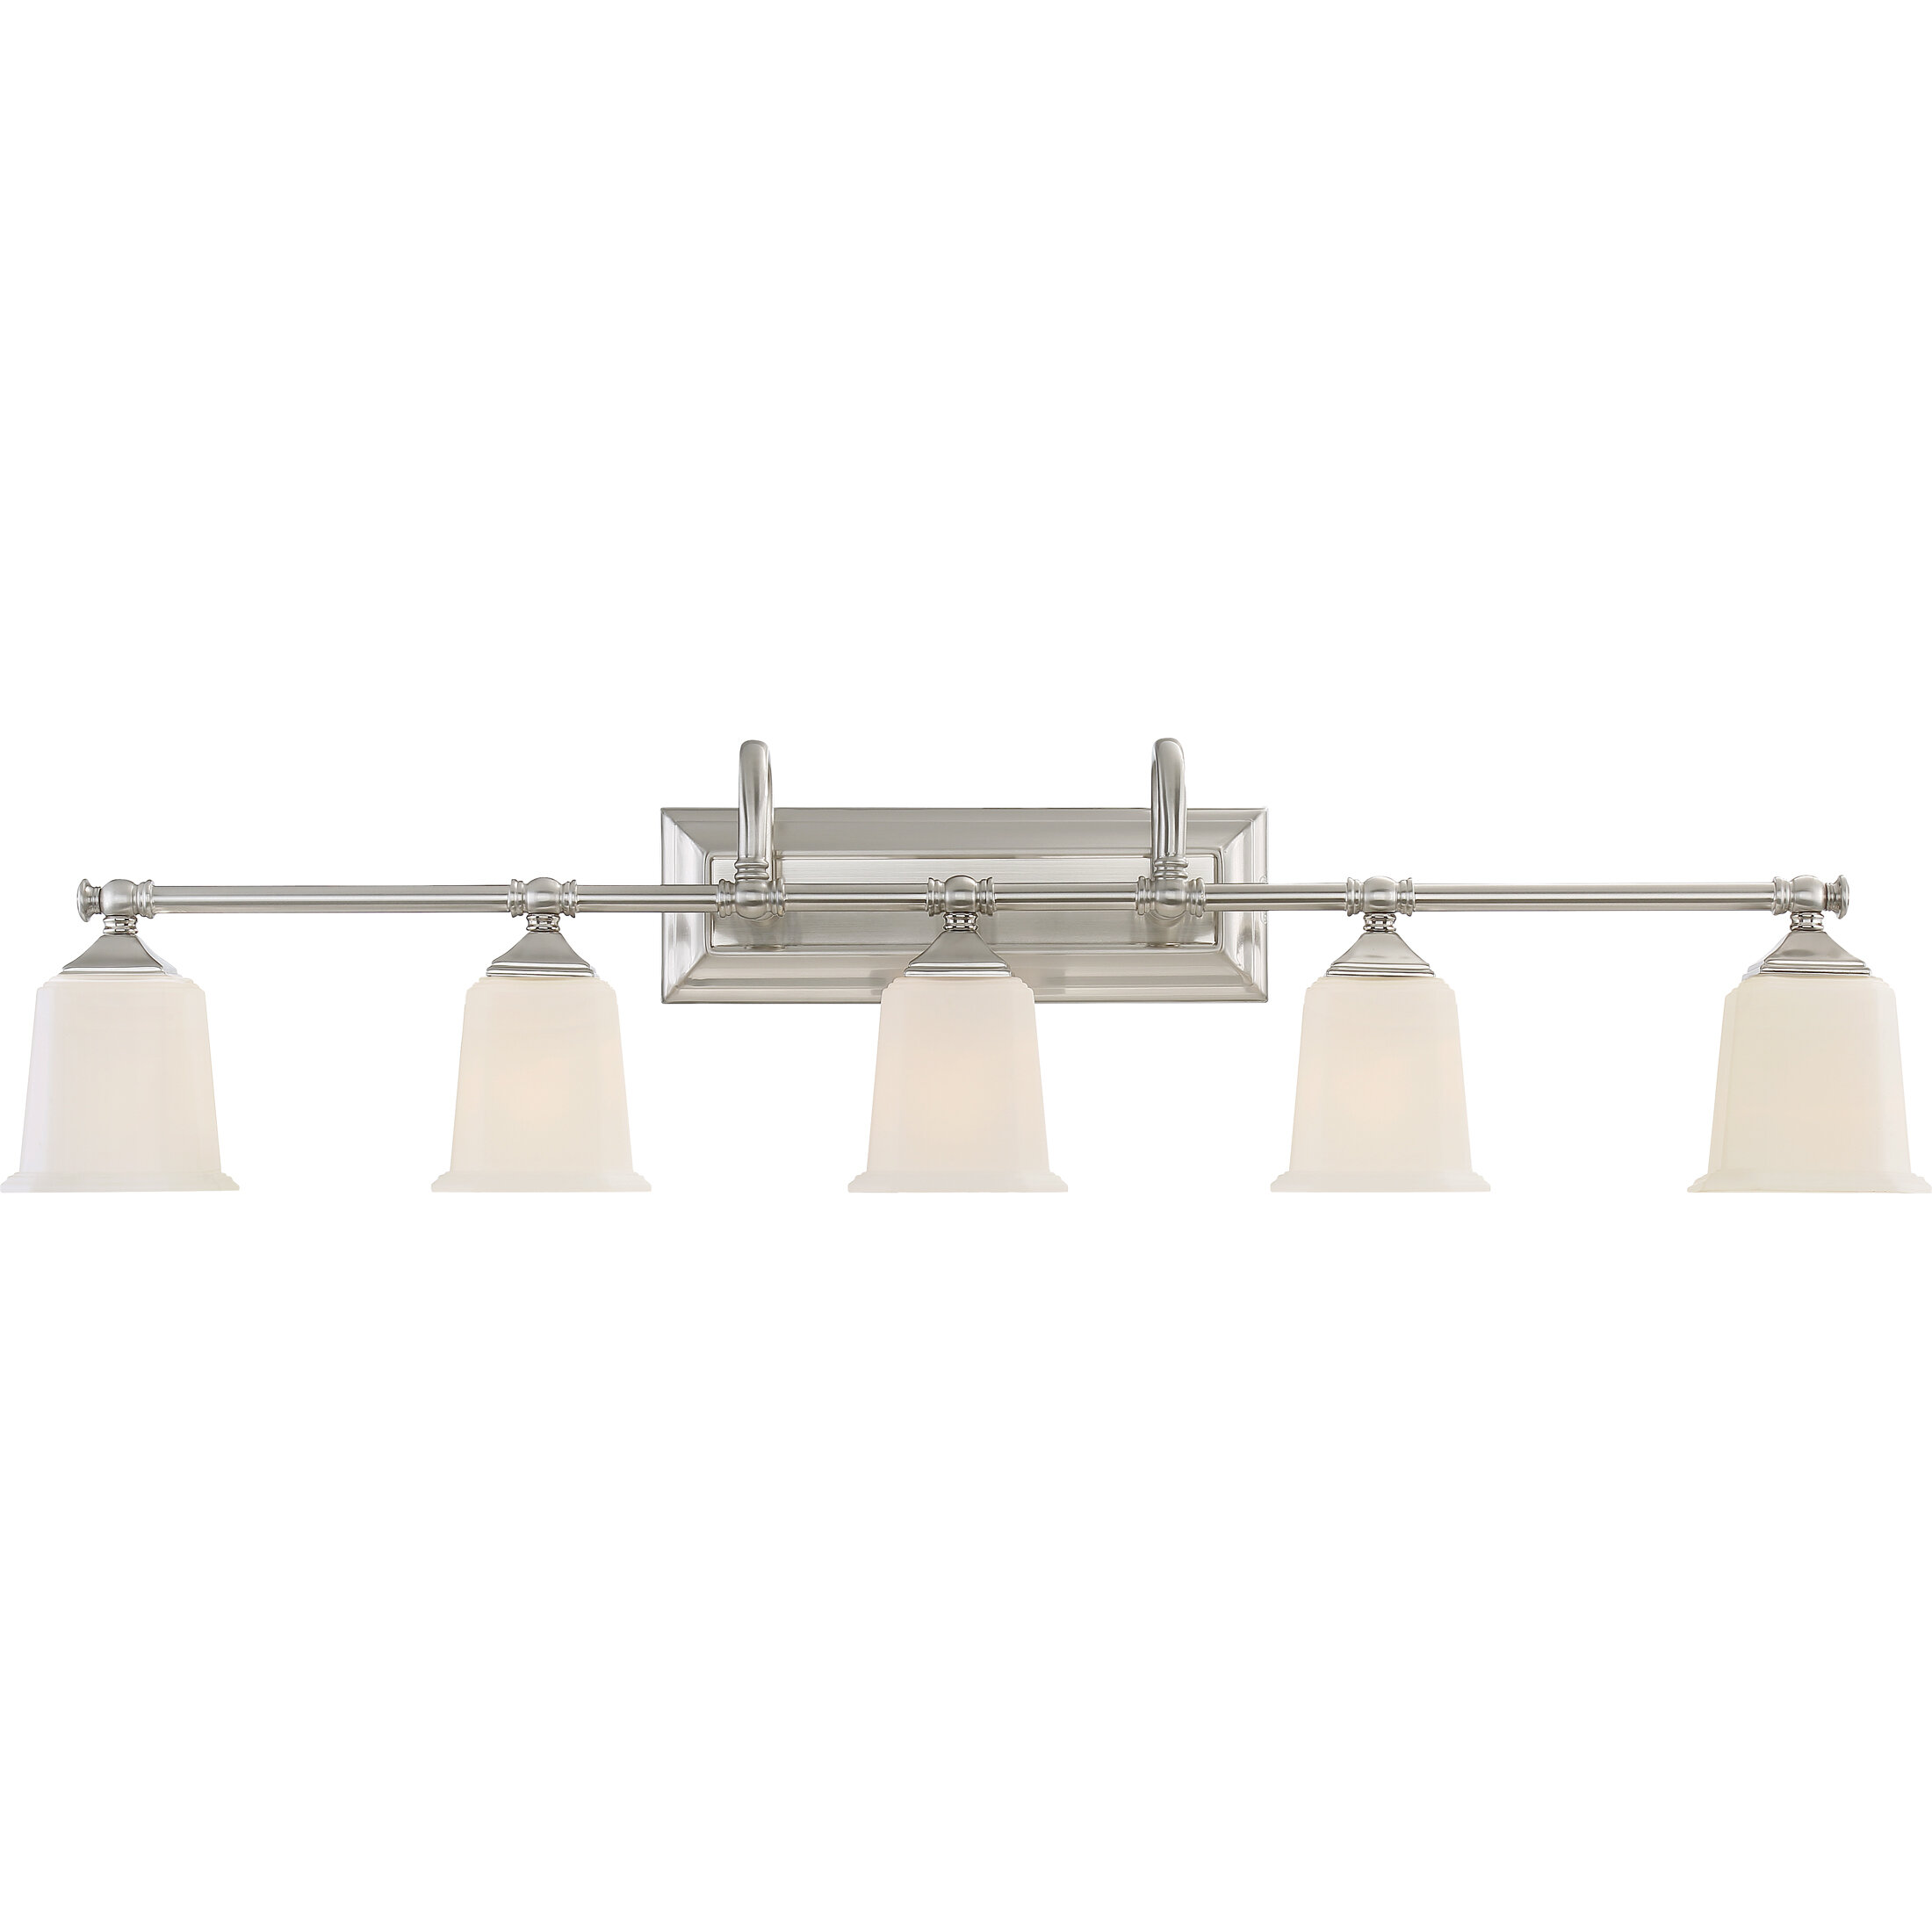 Bima 5 Light Vanity Reviews